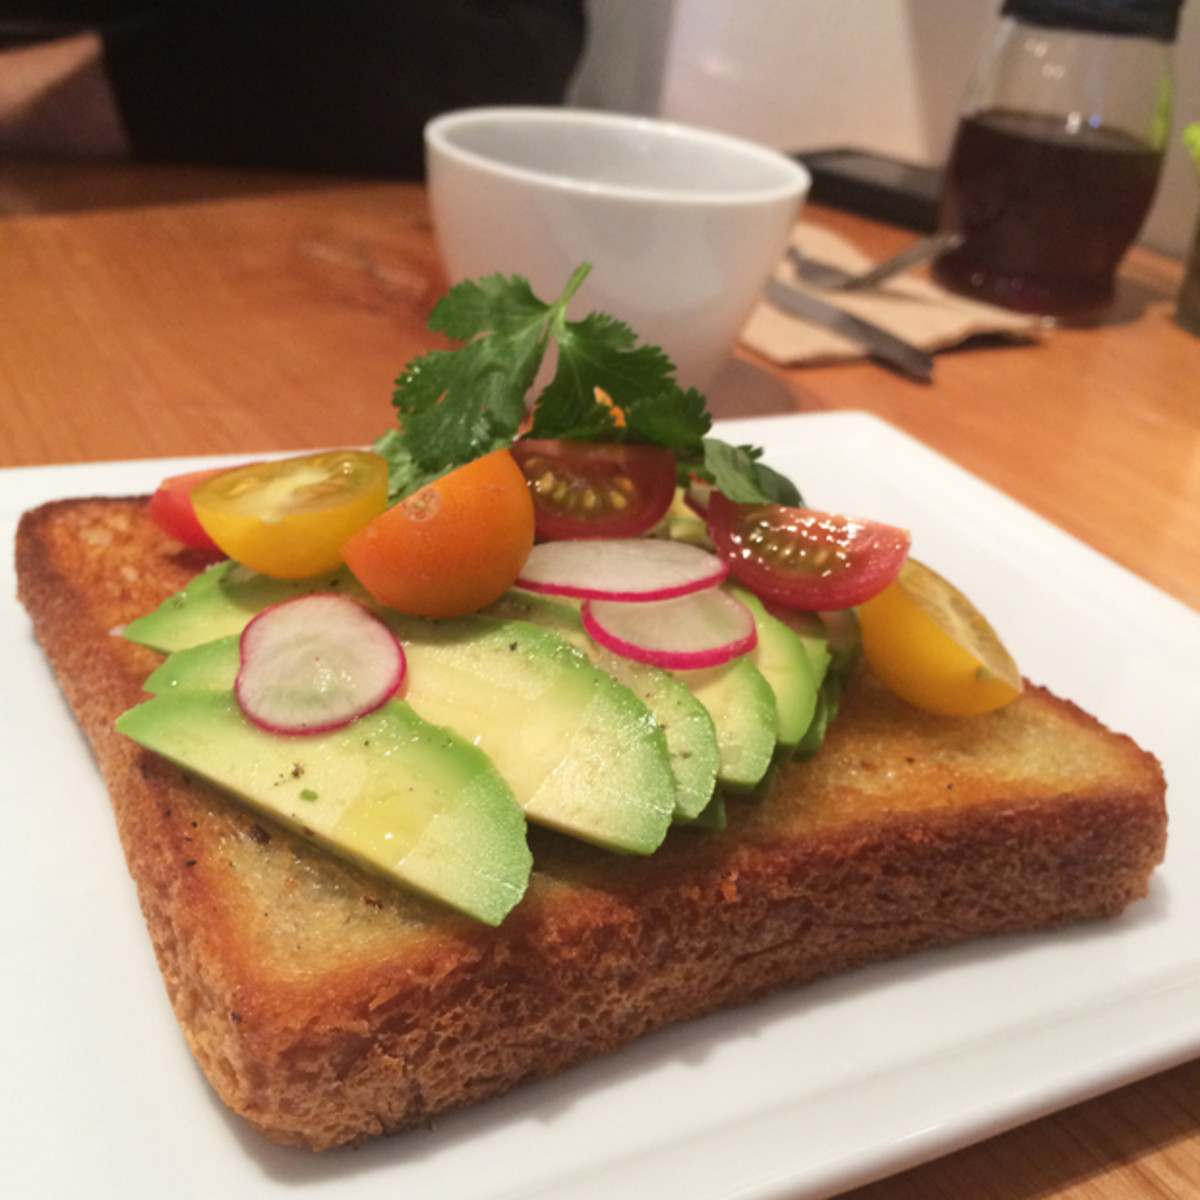 {Avocado toast from our local coffee shop}